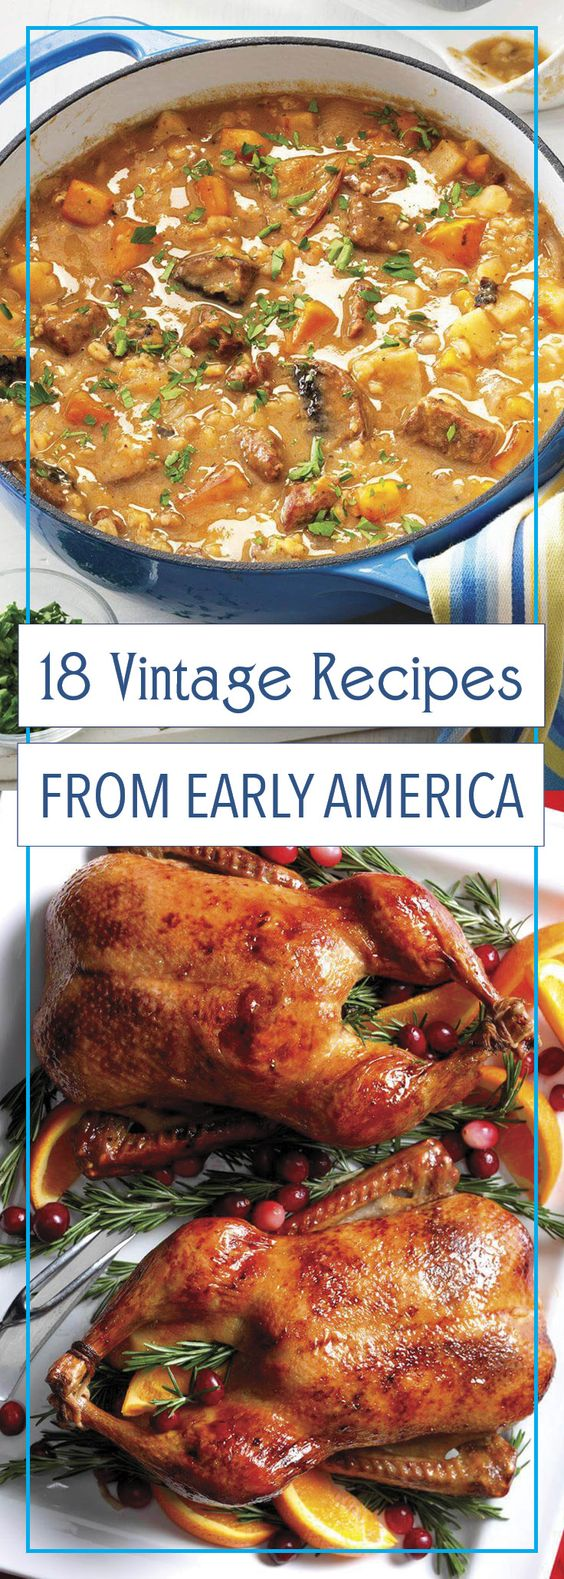 18 Vintage Recipes From Early America